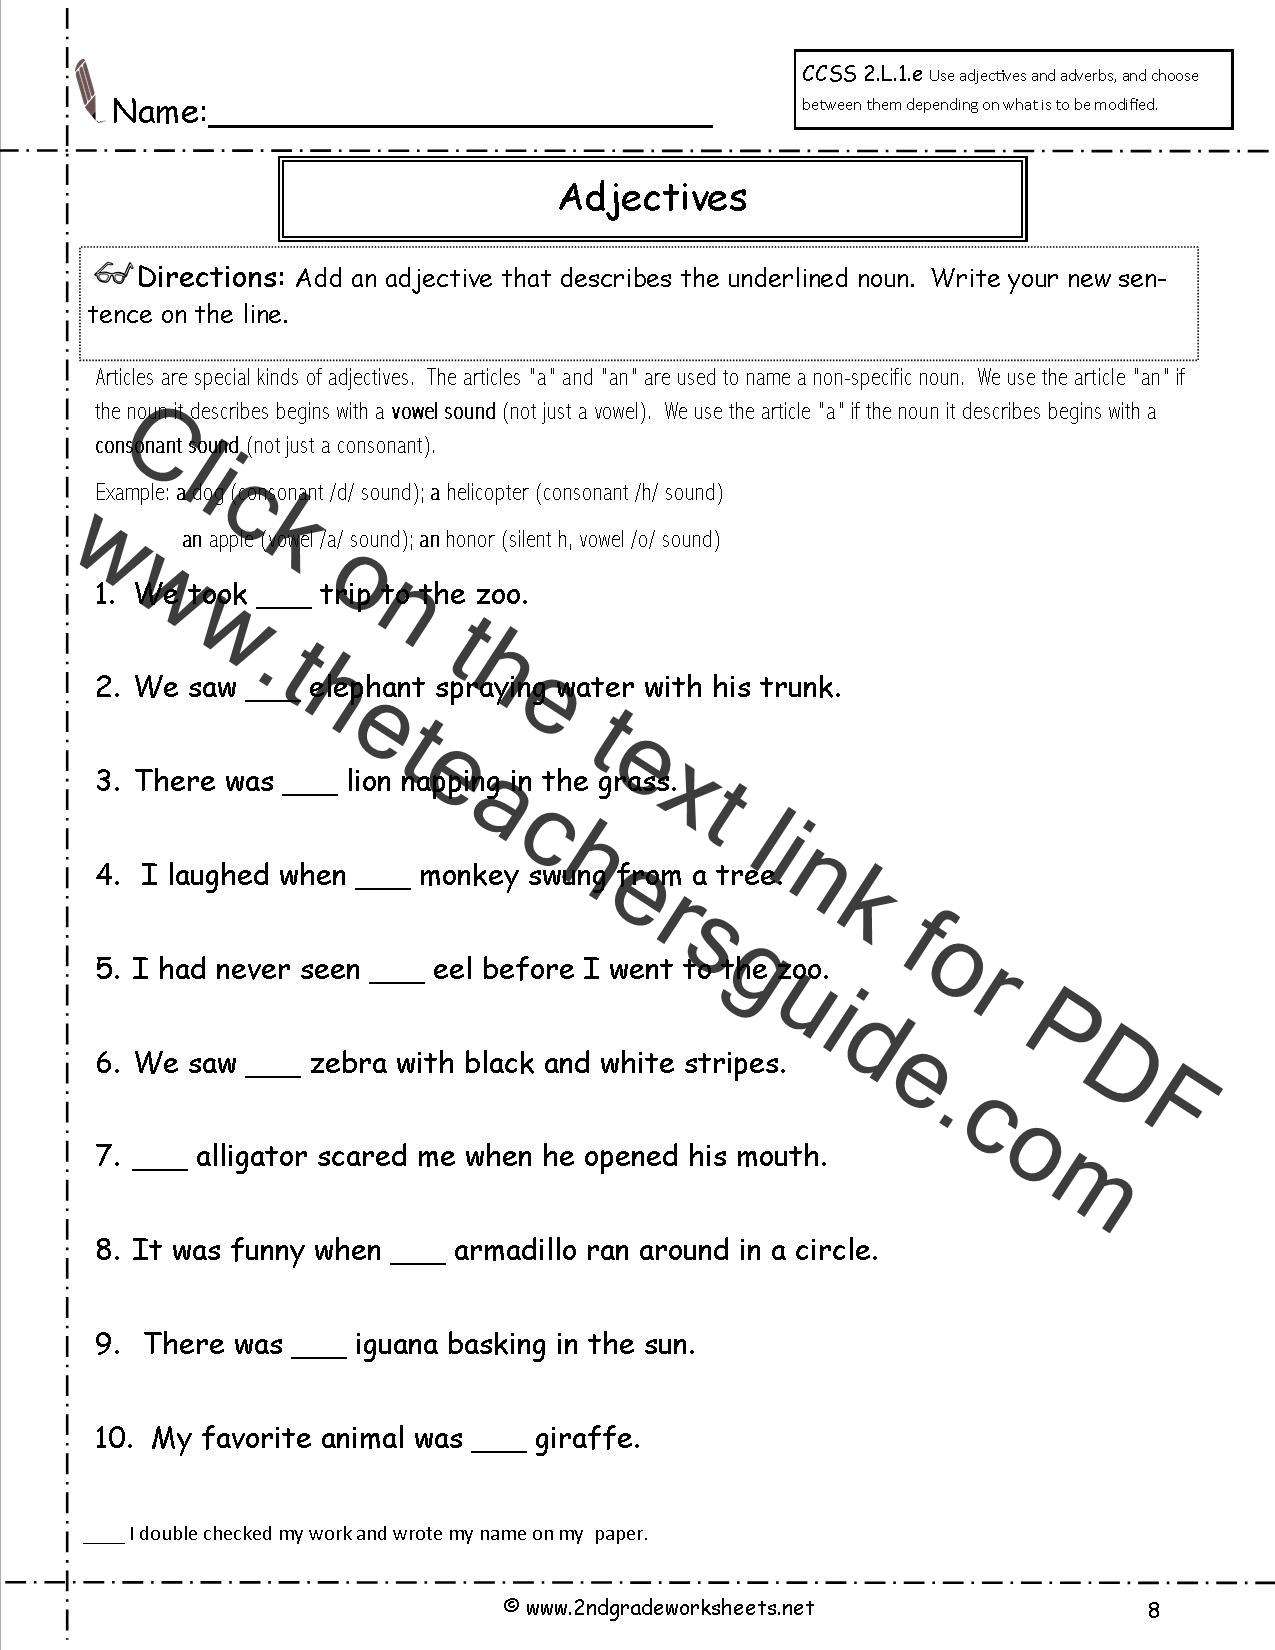 Worksheet 2nd Grade Ela Worksheets free languagegrammar worksheets and printouts adjectives worksheets